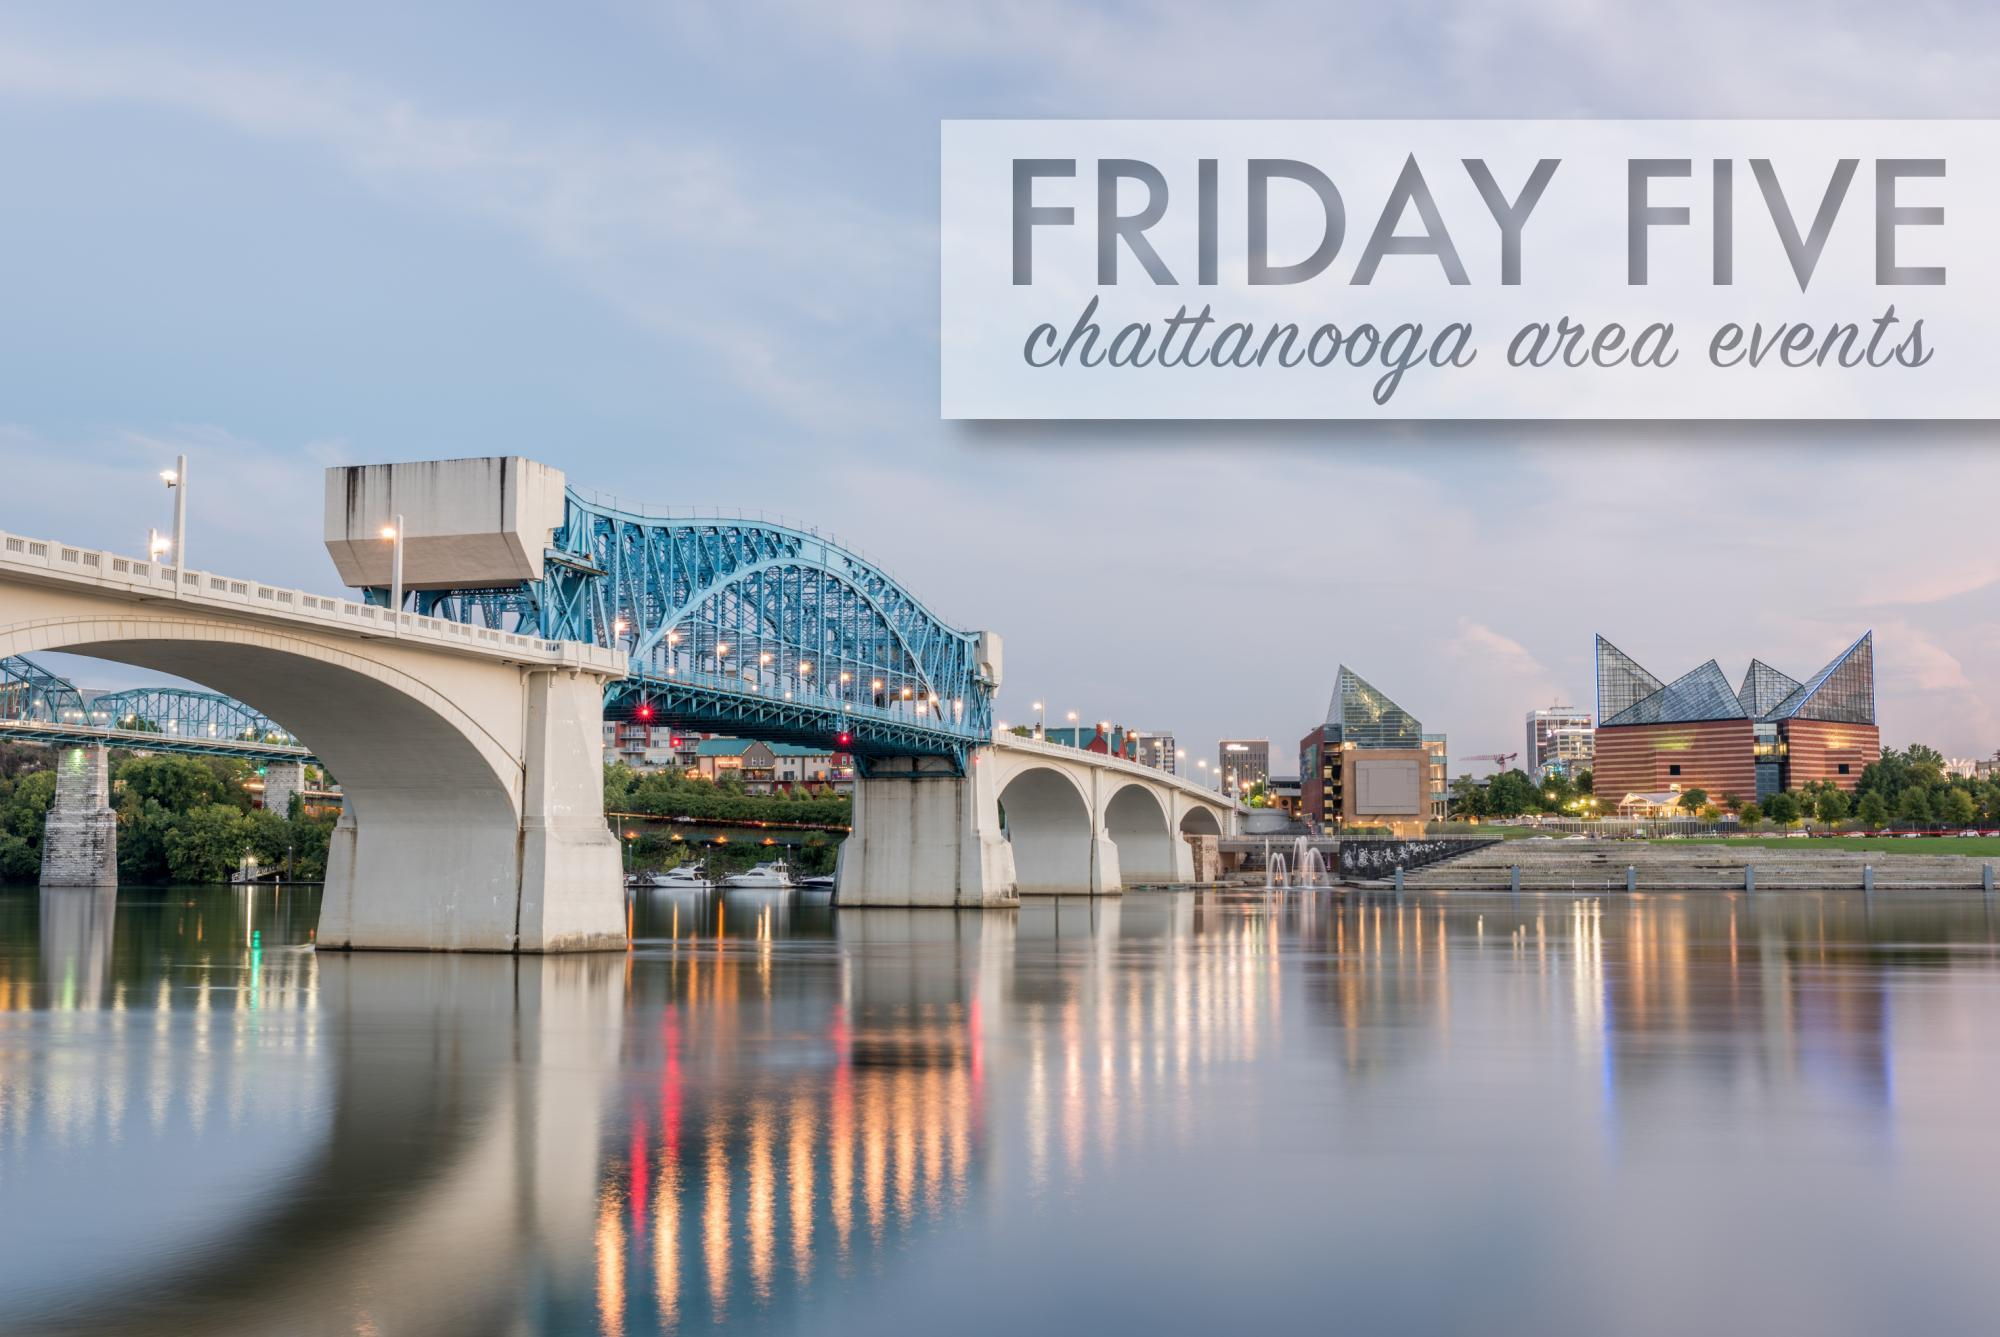 Chattanooga area events